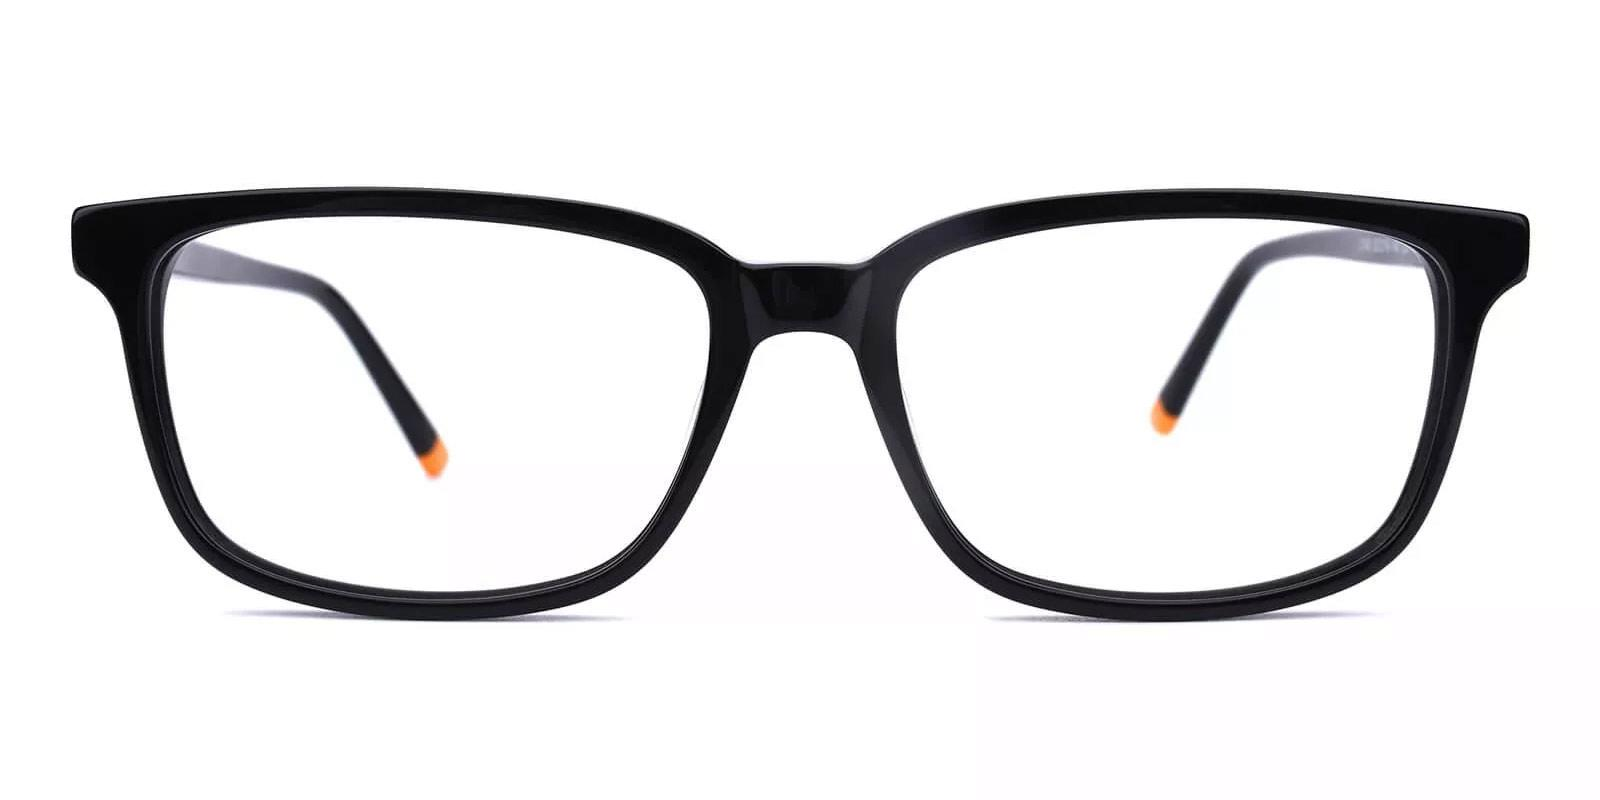 Connotation-Black-Rectangle-Acetate-Eyeglasses-additional2